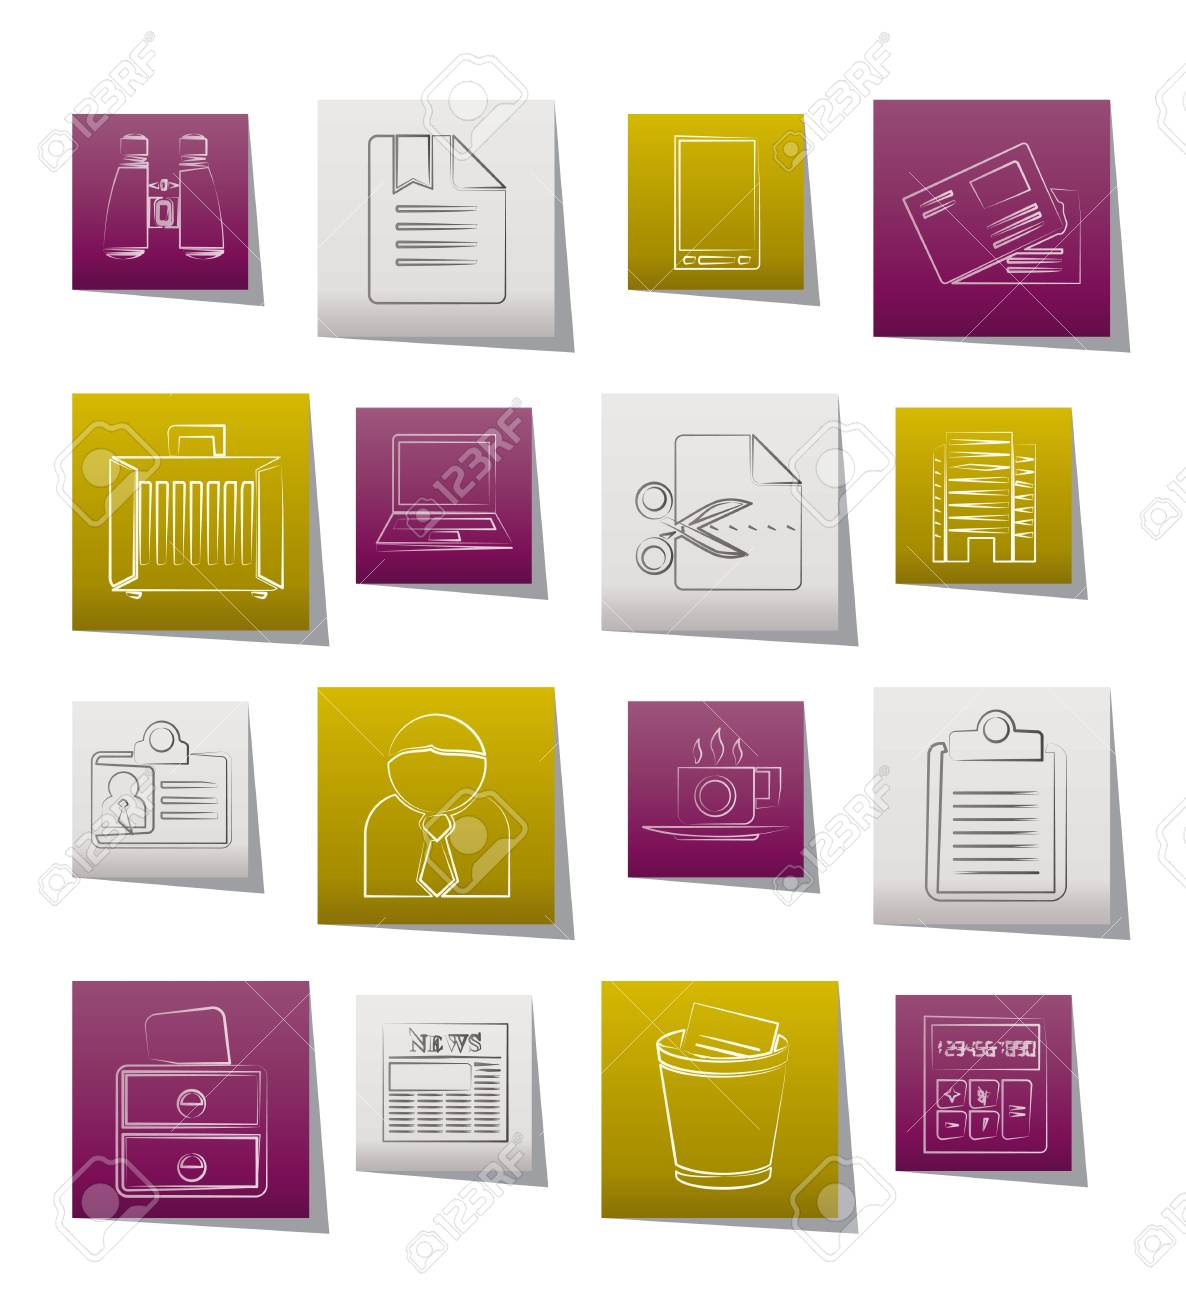 Business and office elements icons Stock Vector - 11883862